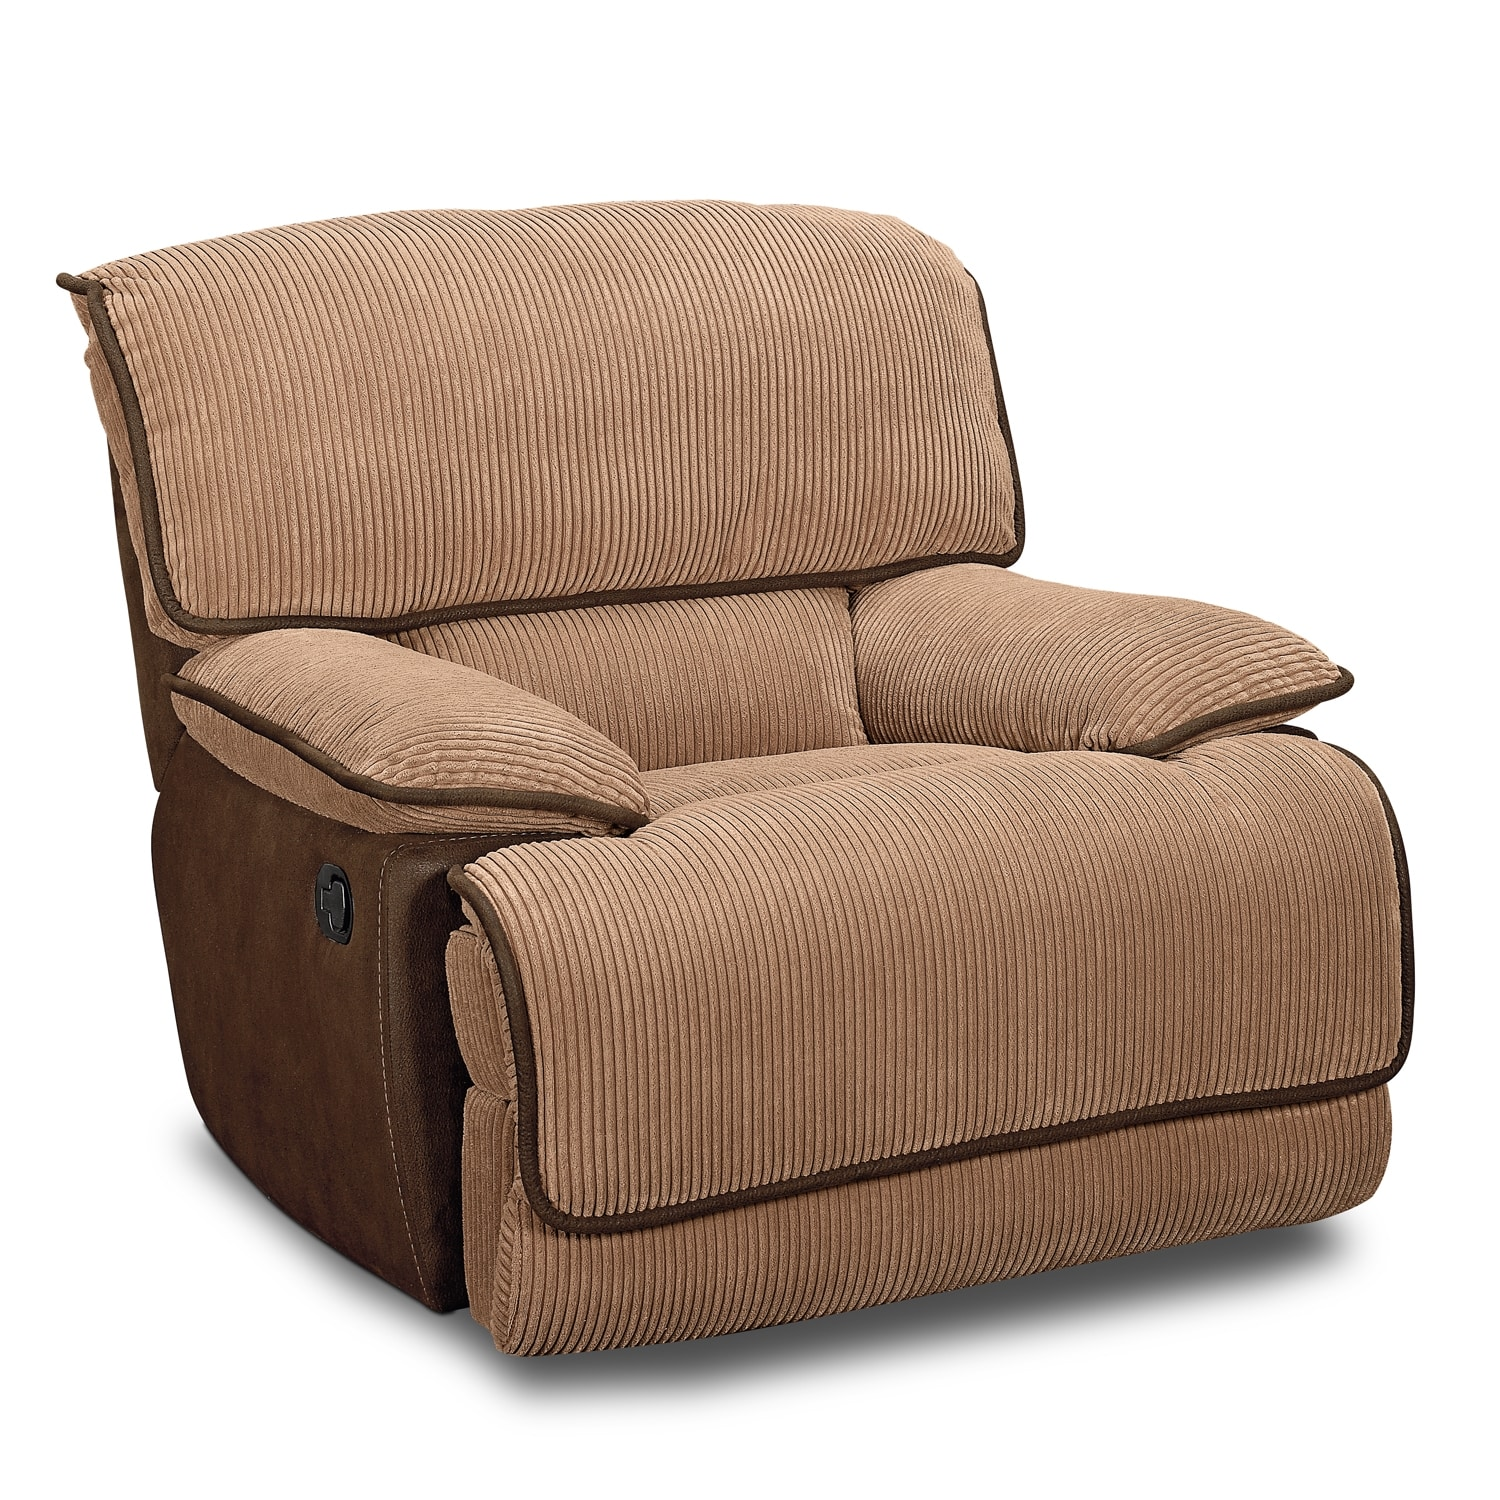 Living Room Furniture - Laguna Glider Recliner - Camel